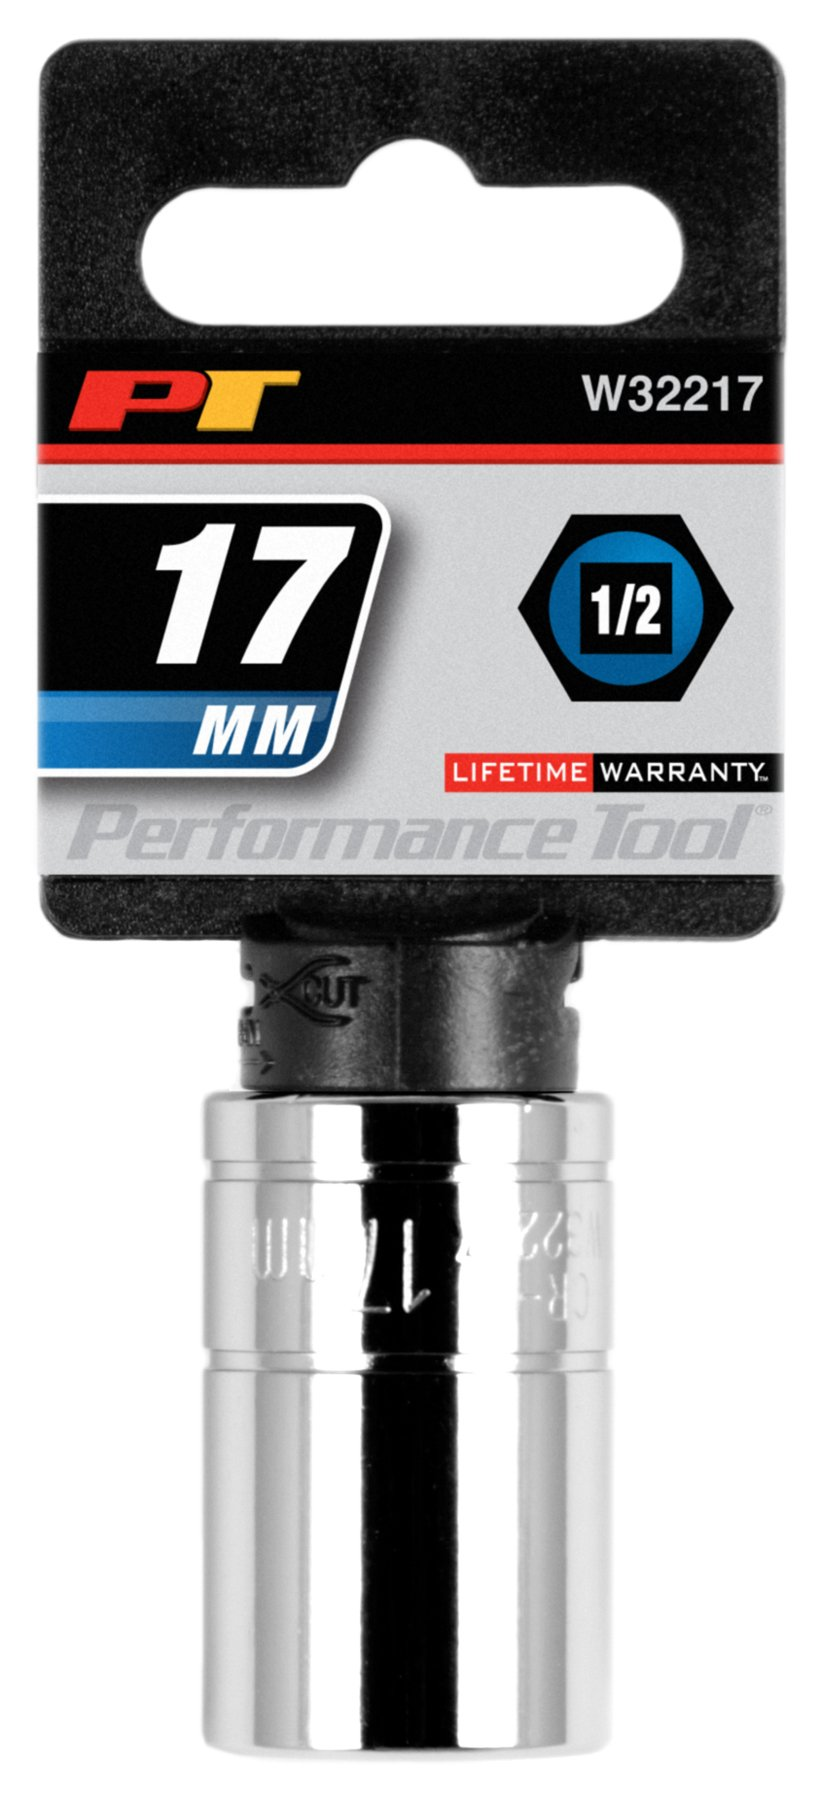 "Performance Tool W32217 1/2"" Dr 17mm 6Point Socket, 1 Pack"